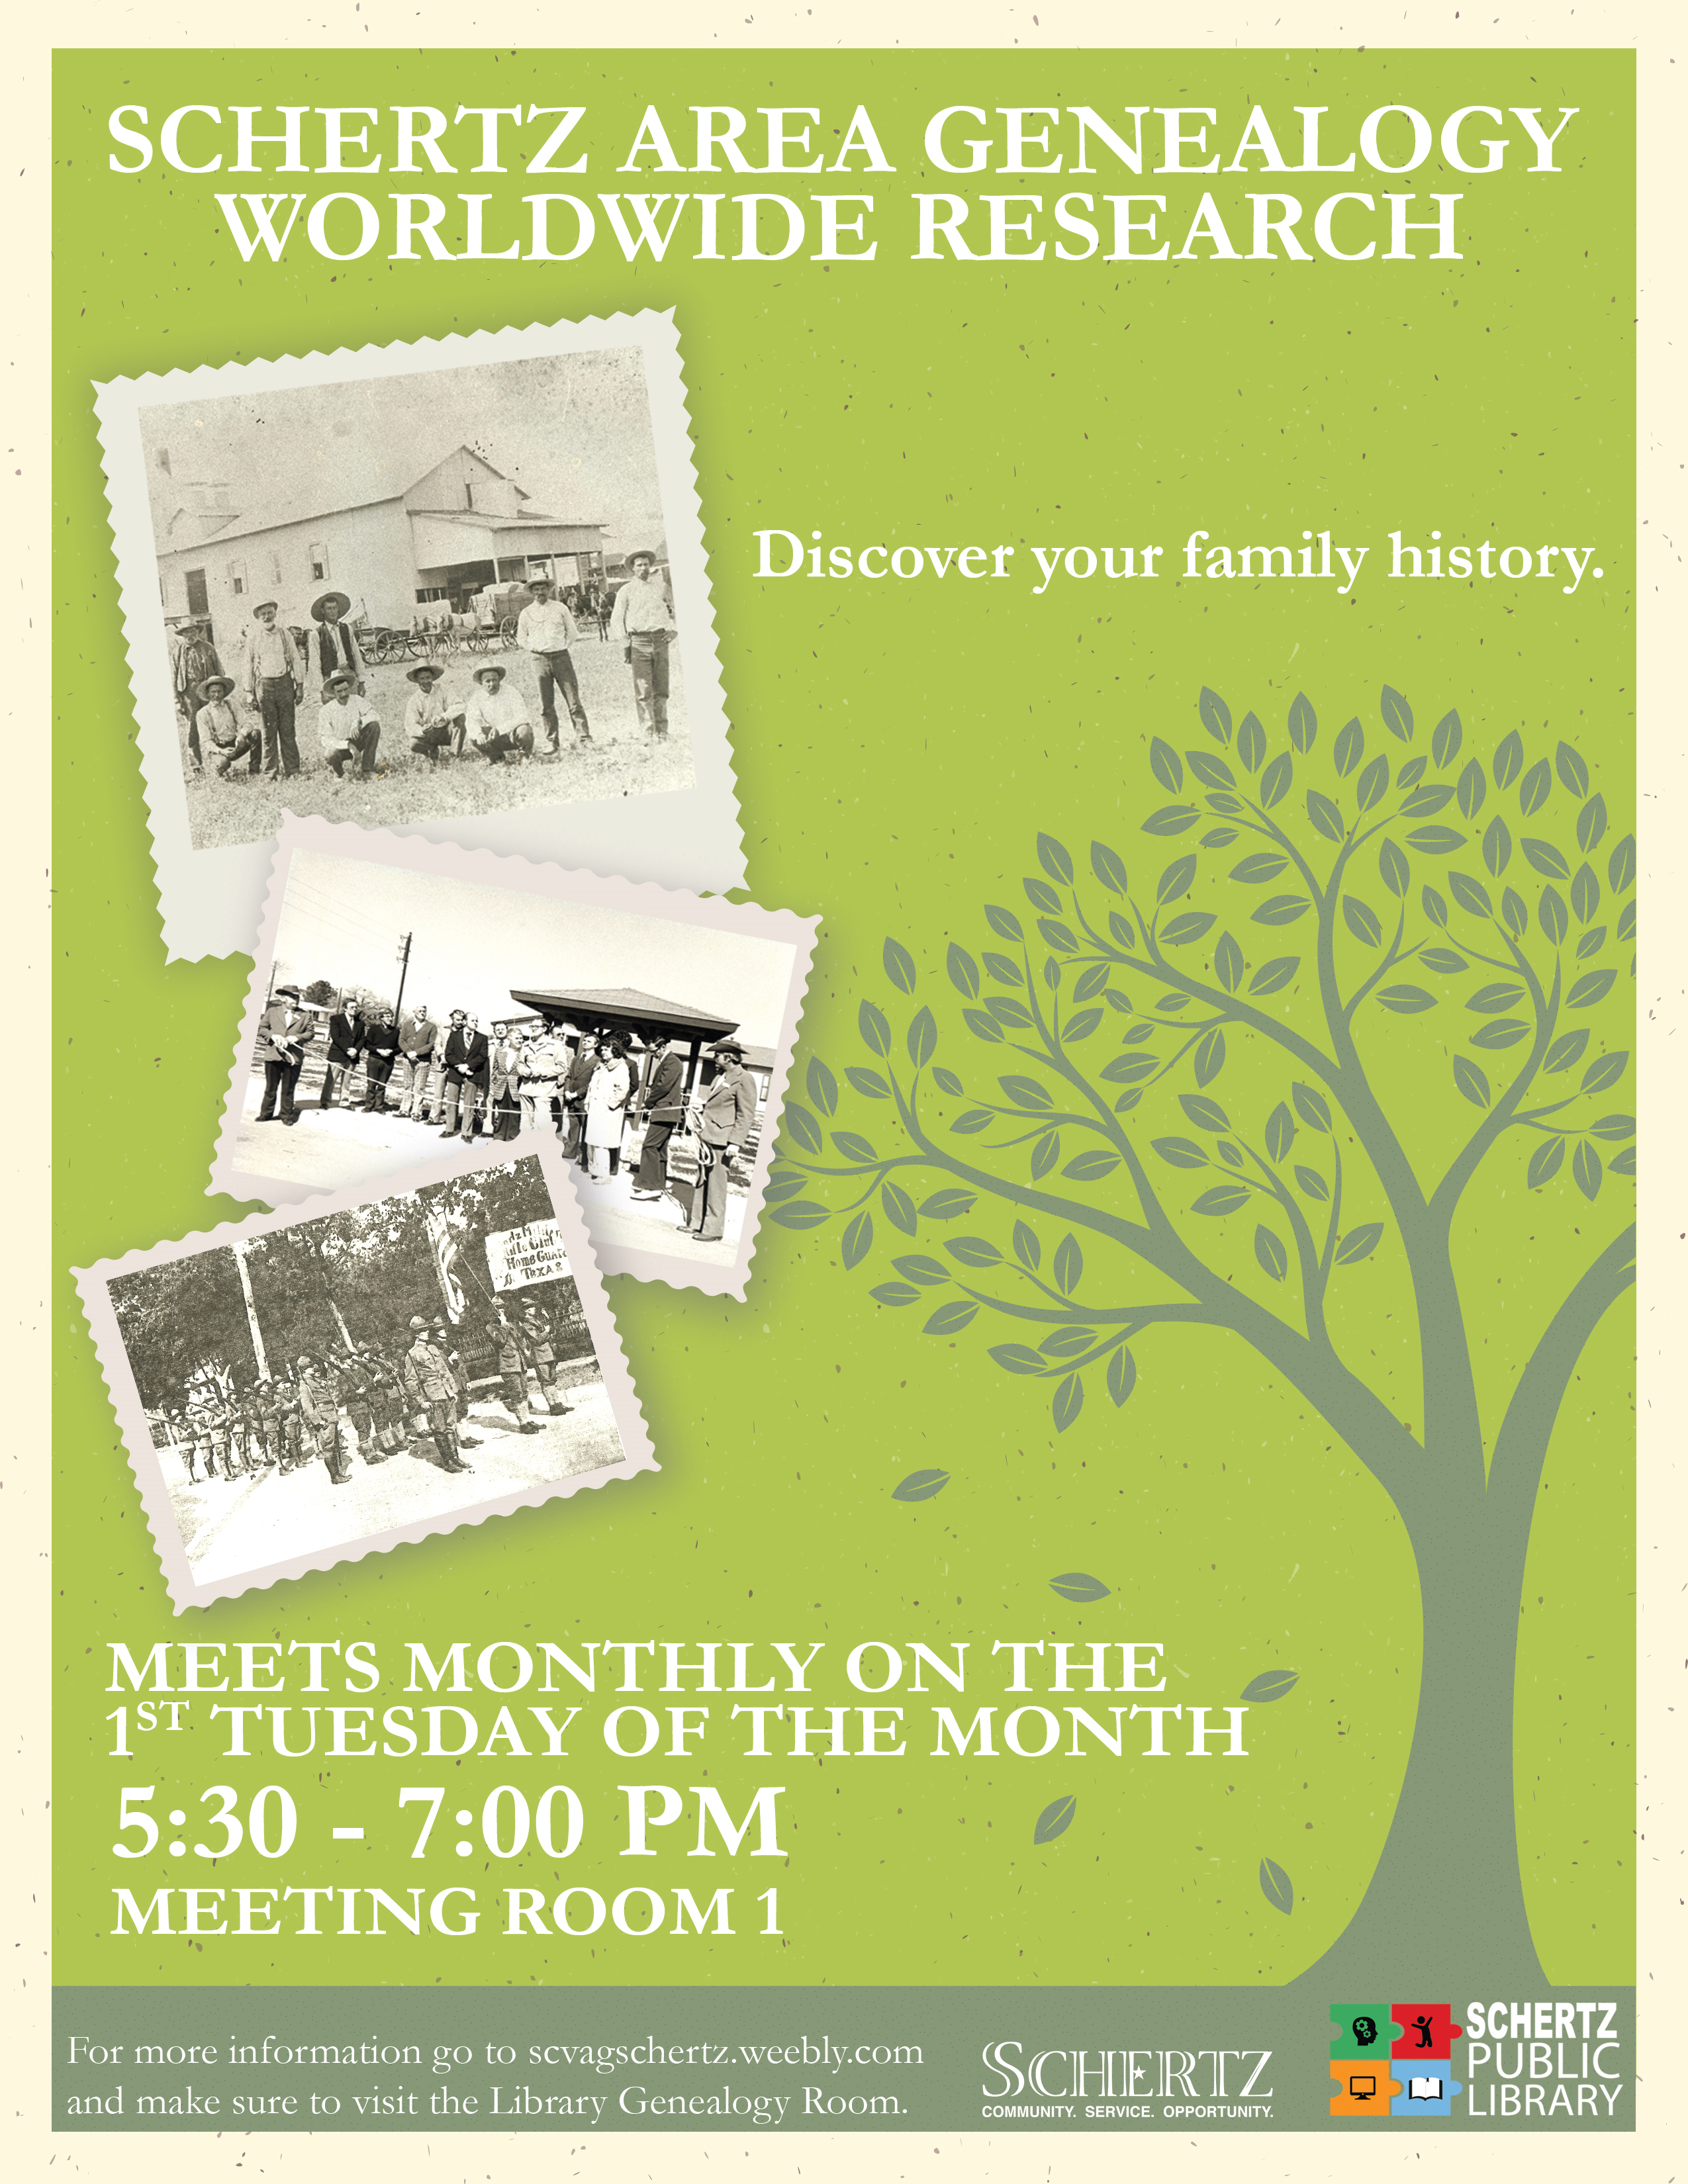 Schertz Area Genealogy Meeting Updated 9-19